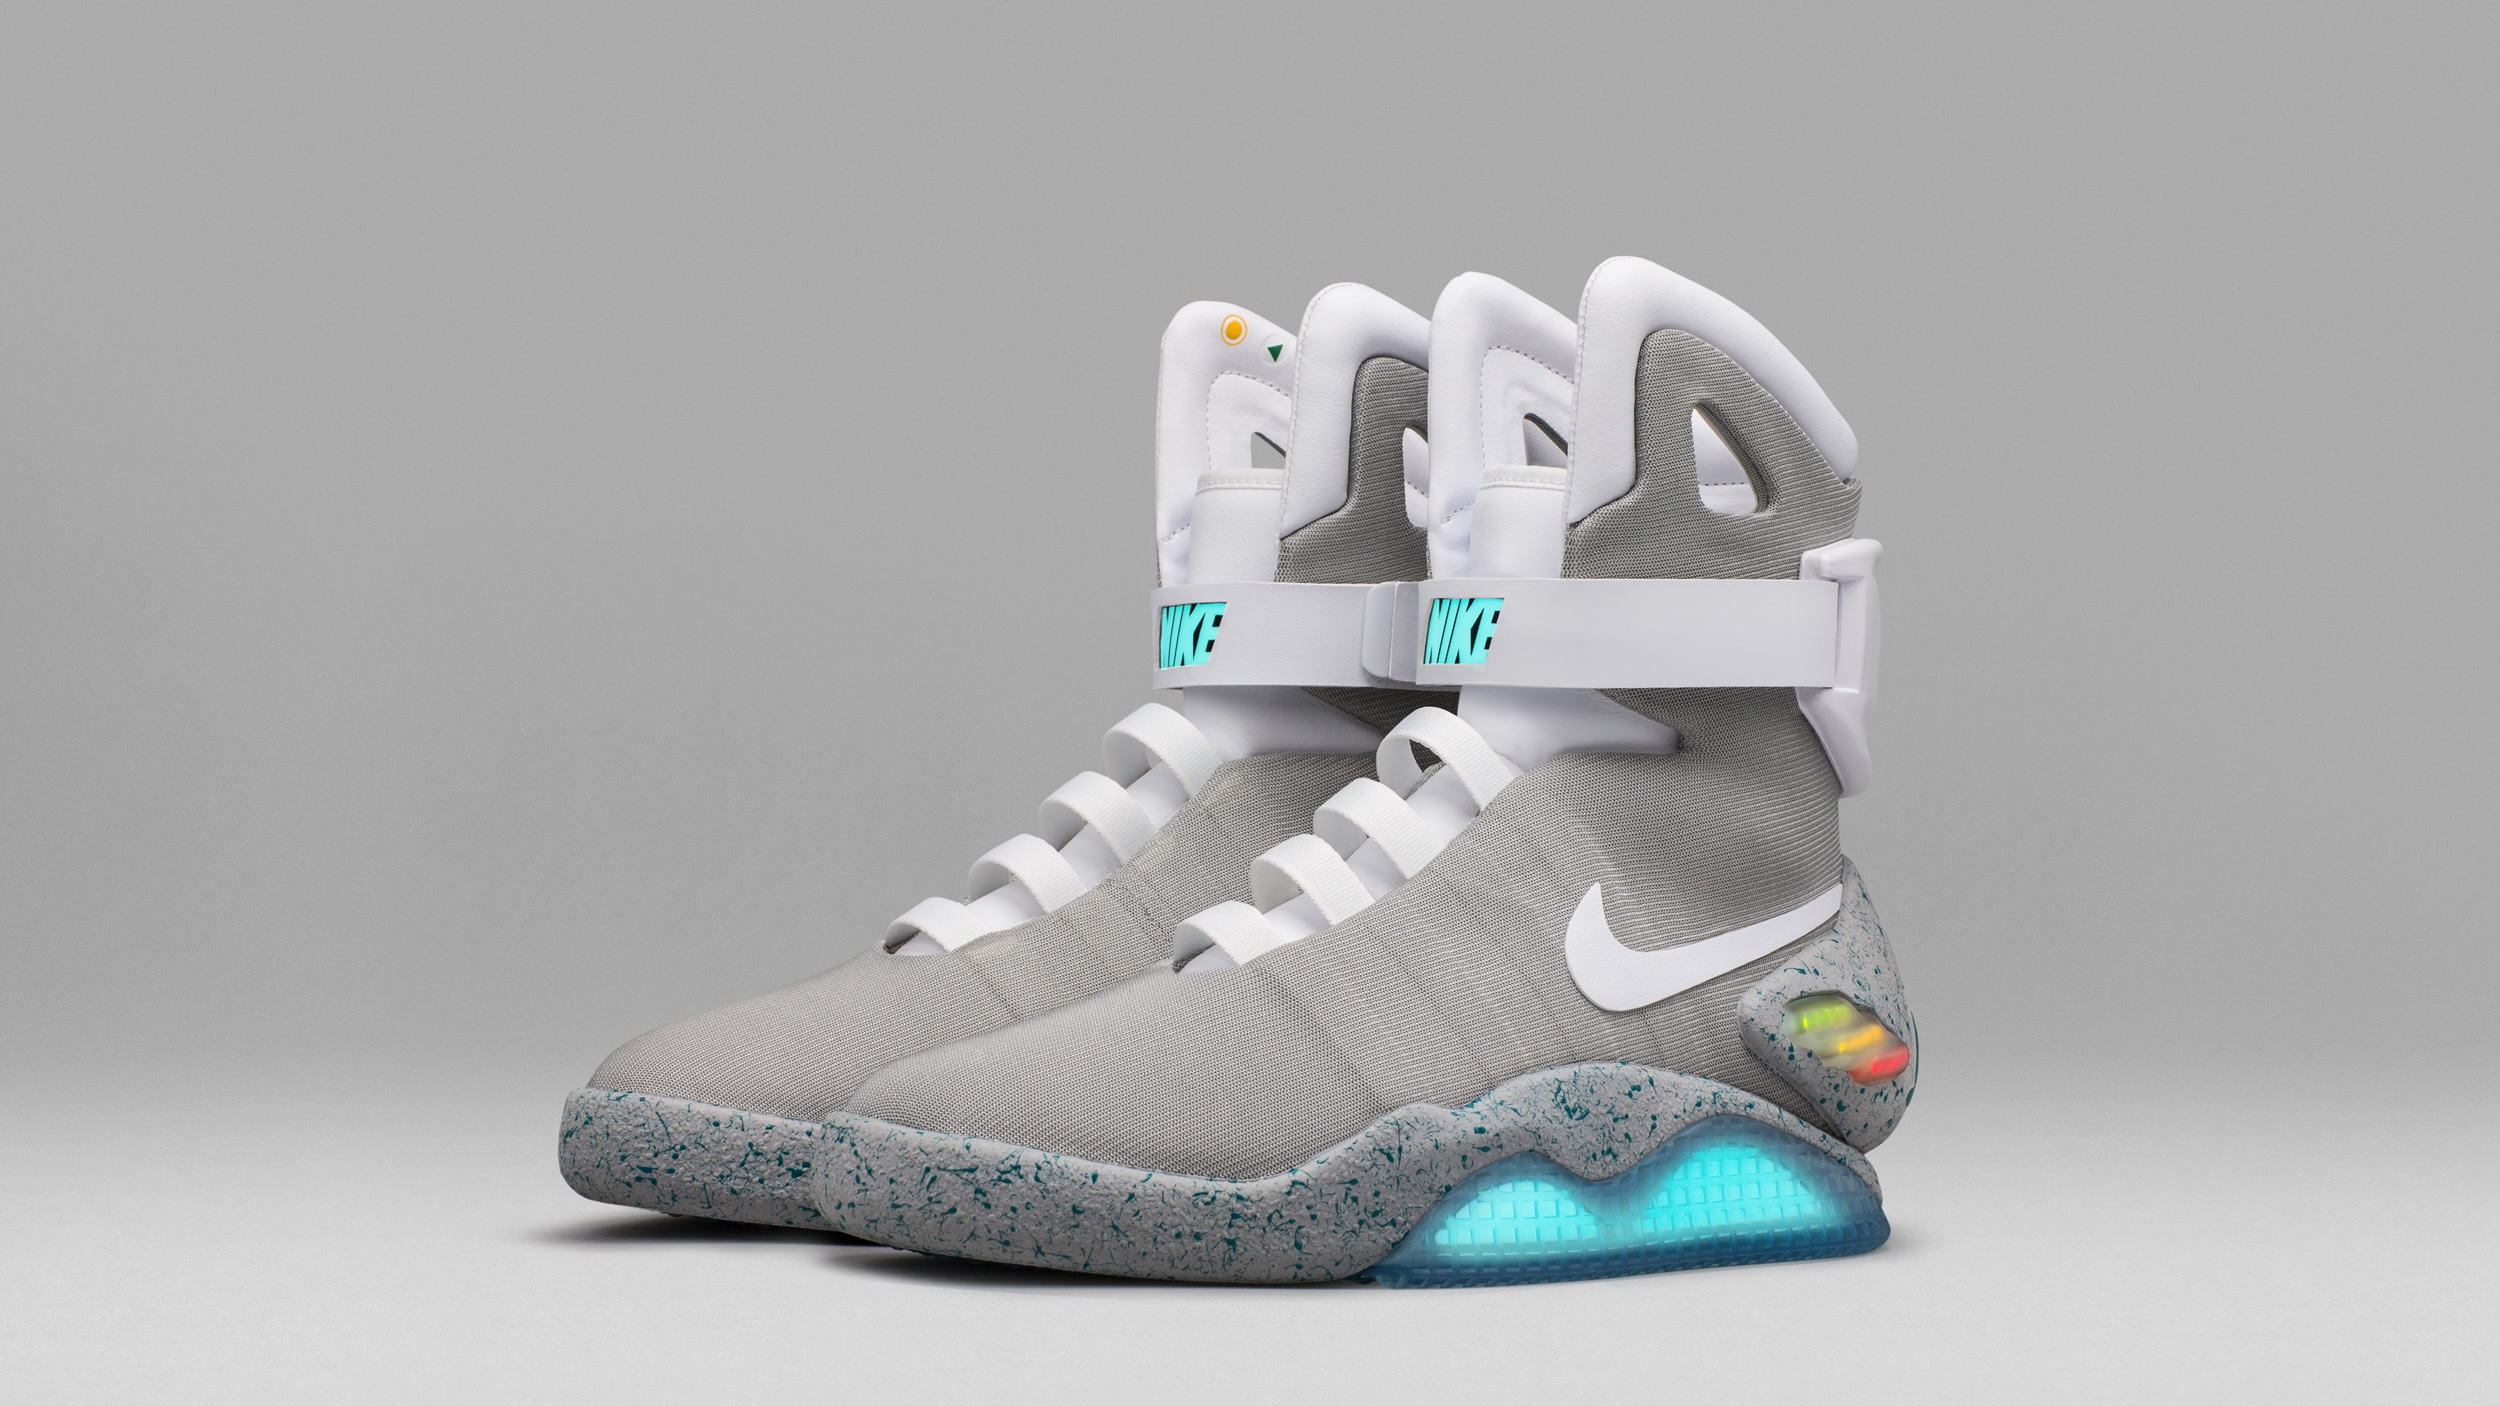 8a4e83fbcc4 I thought Nike s self-lacing sneakers were a gimmick. Then I tried on the  Nike Mag